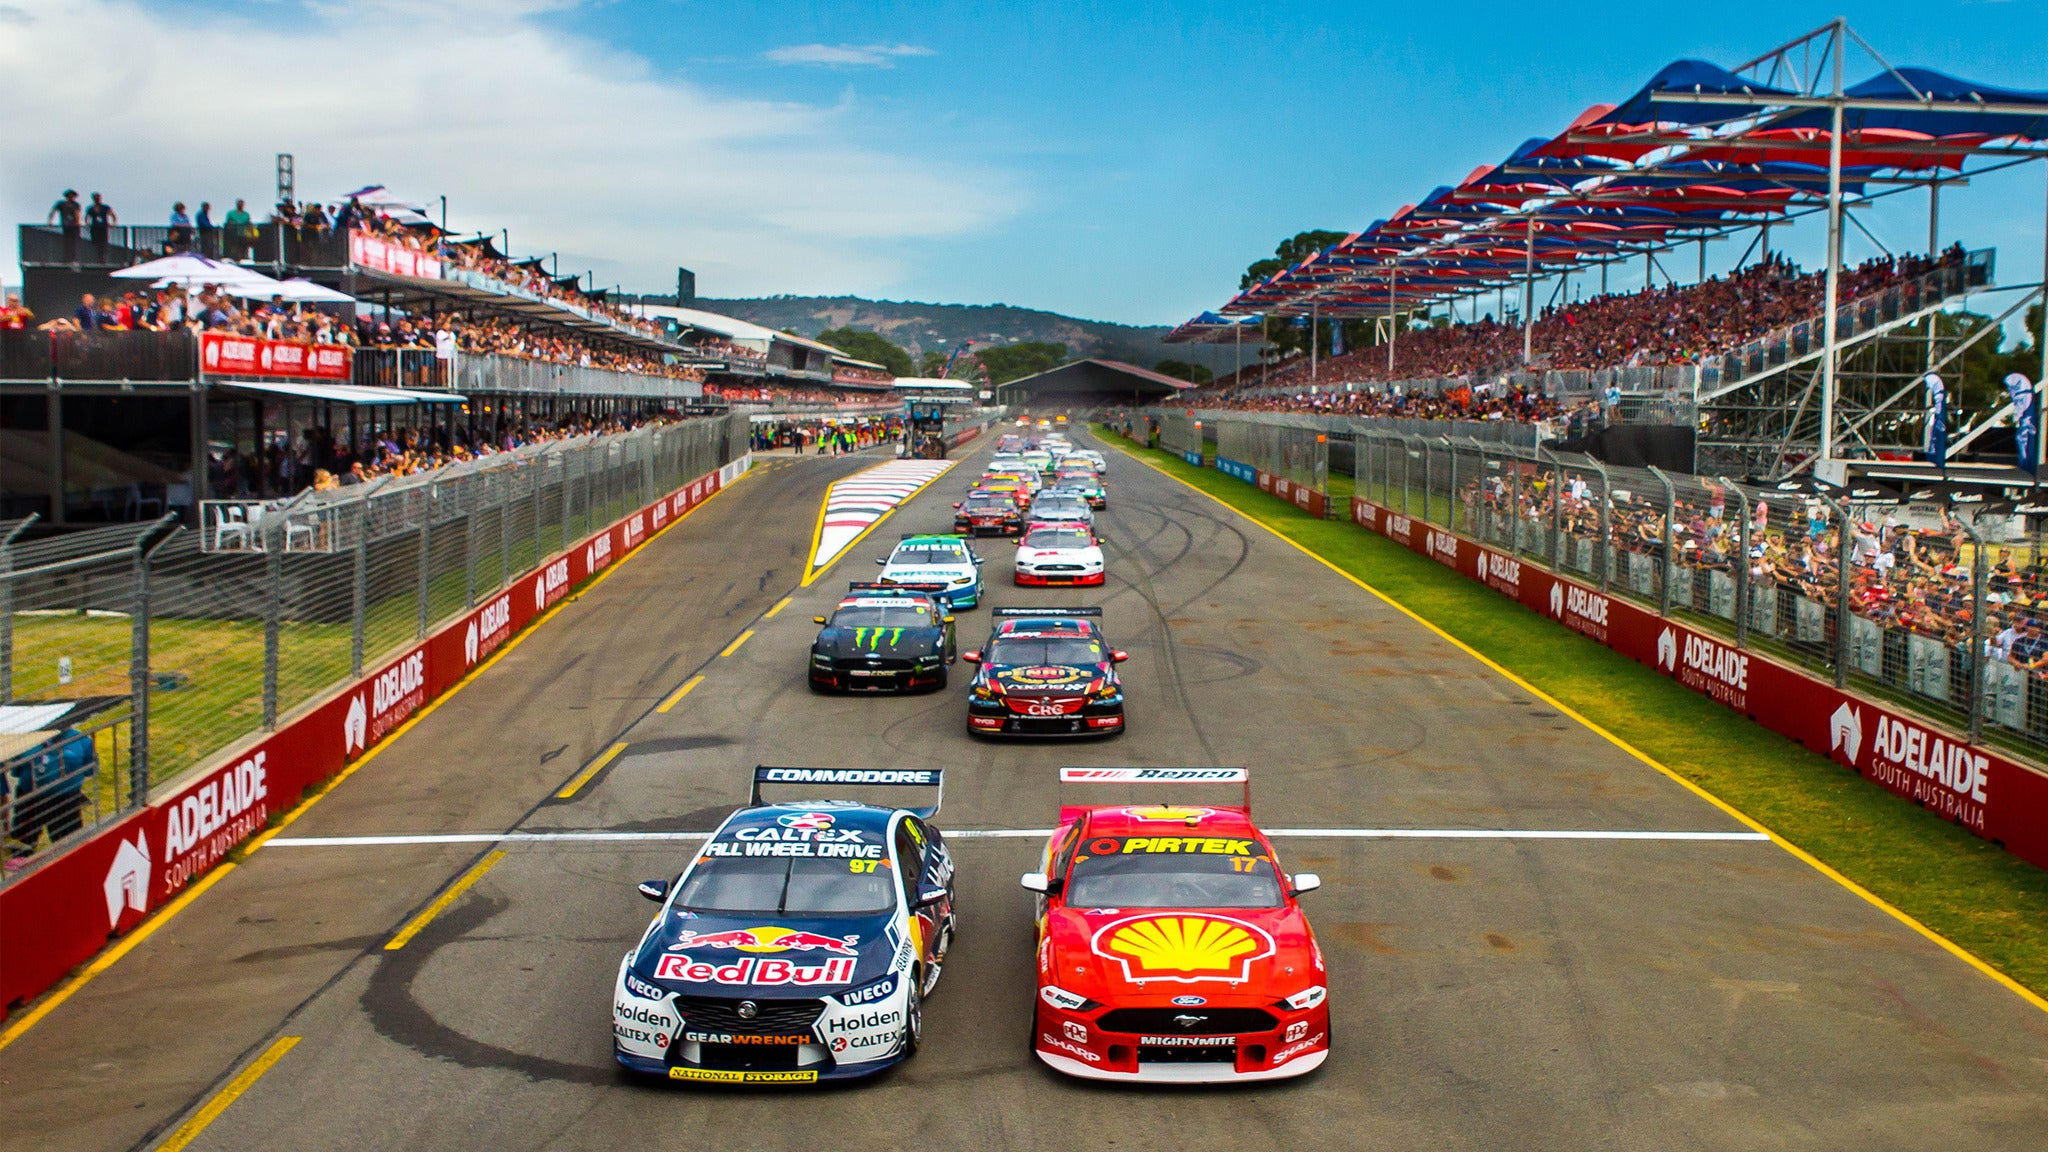 Adelaide 500 - Hairpin Grandstand - Sunday